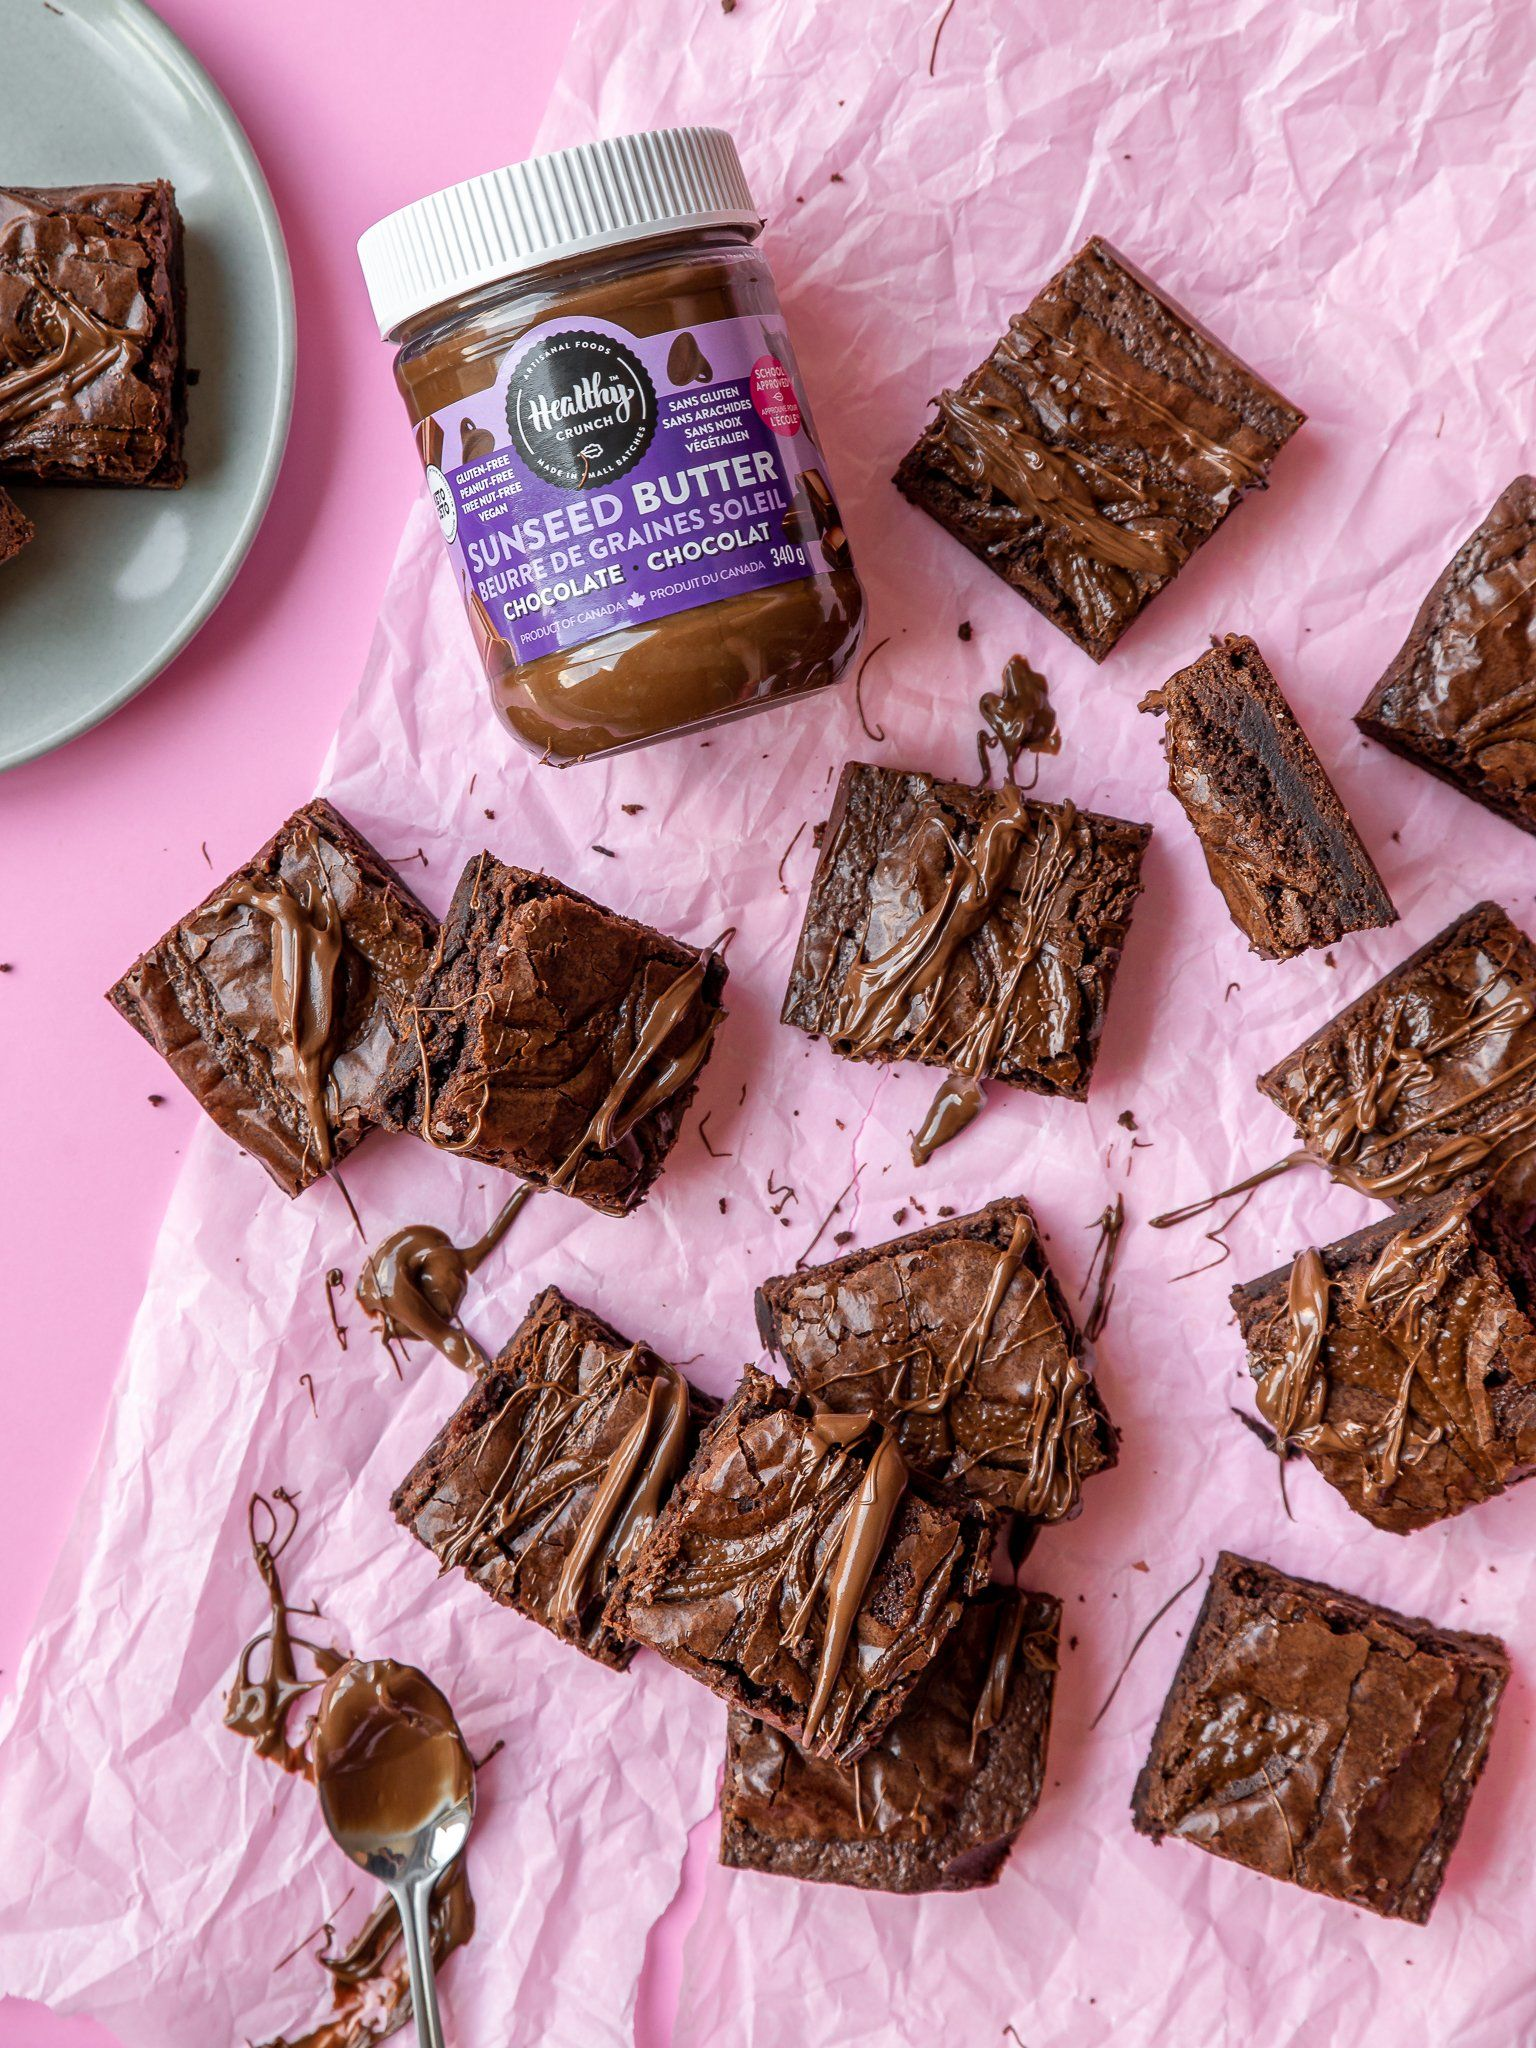 Chocolate Seed Butter Brownies (Gluten-free, Grain-free, Vegan, Allergen-friendly, Dairy-free)